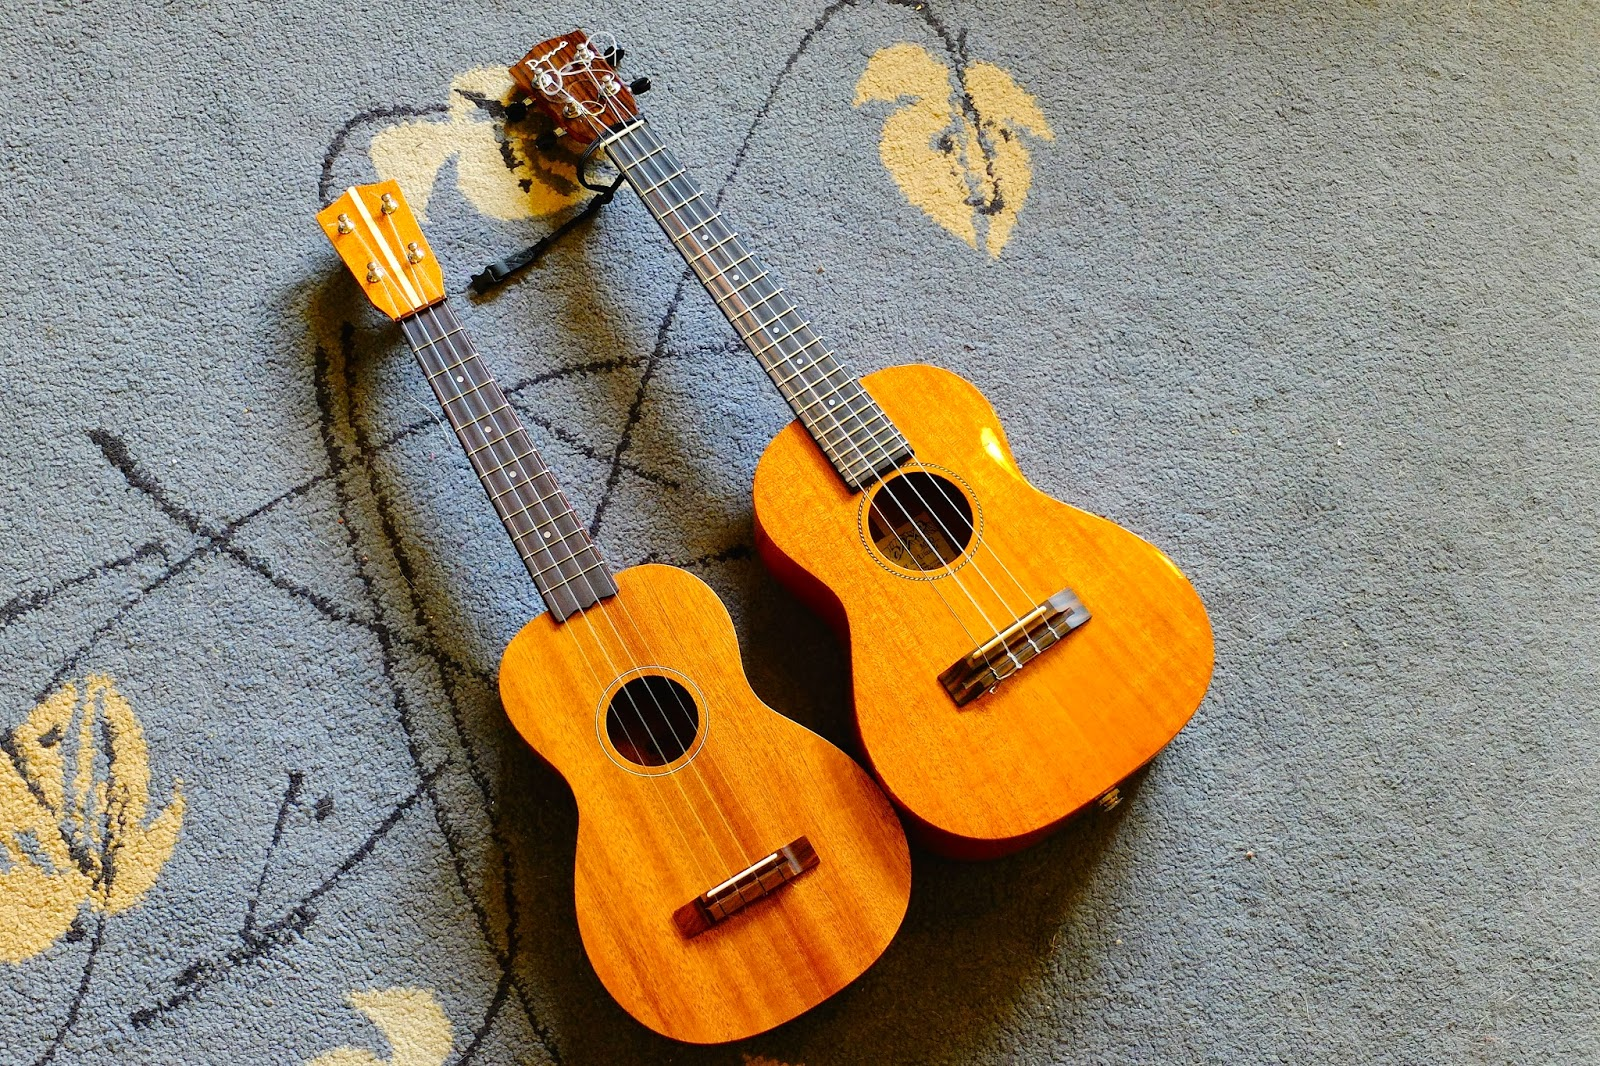 Bruko 9 tenor size comparison